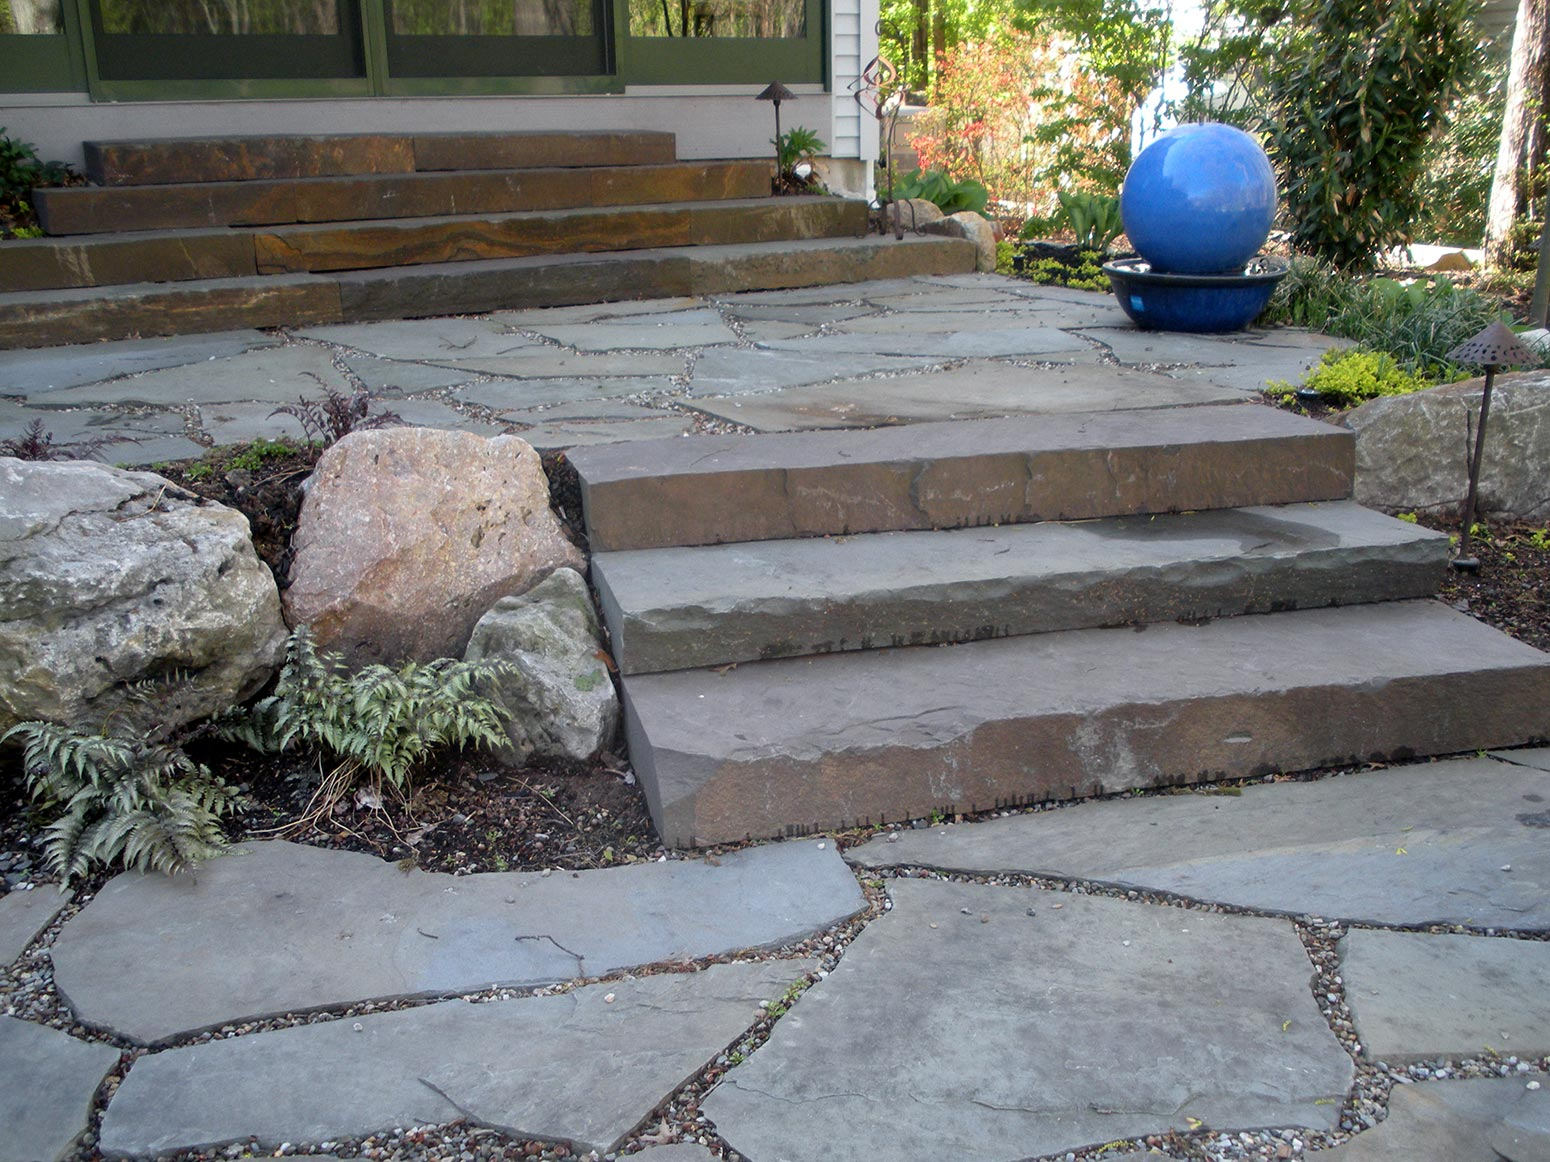 Natural Stone, EP Henry Paver Walkways, Brick Patio ... on Rock Patio Designs id=86500